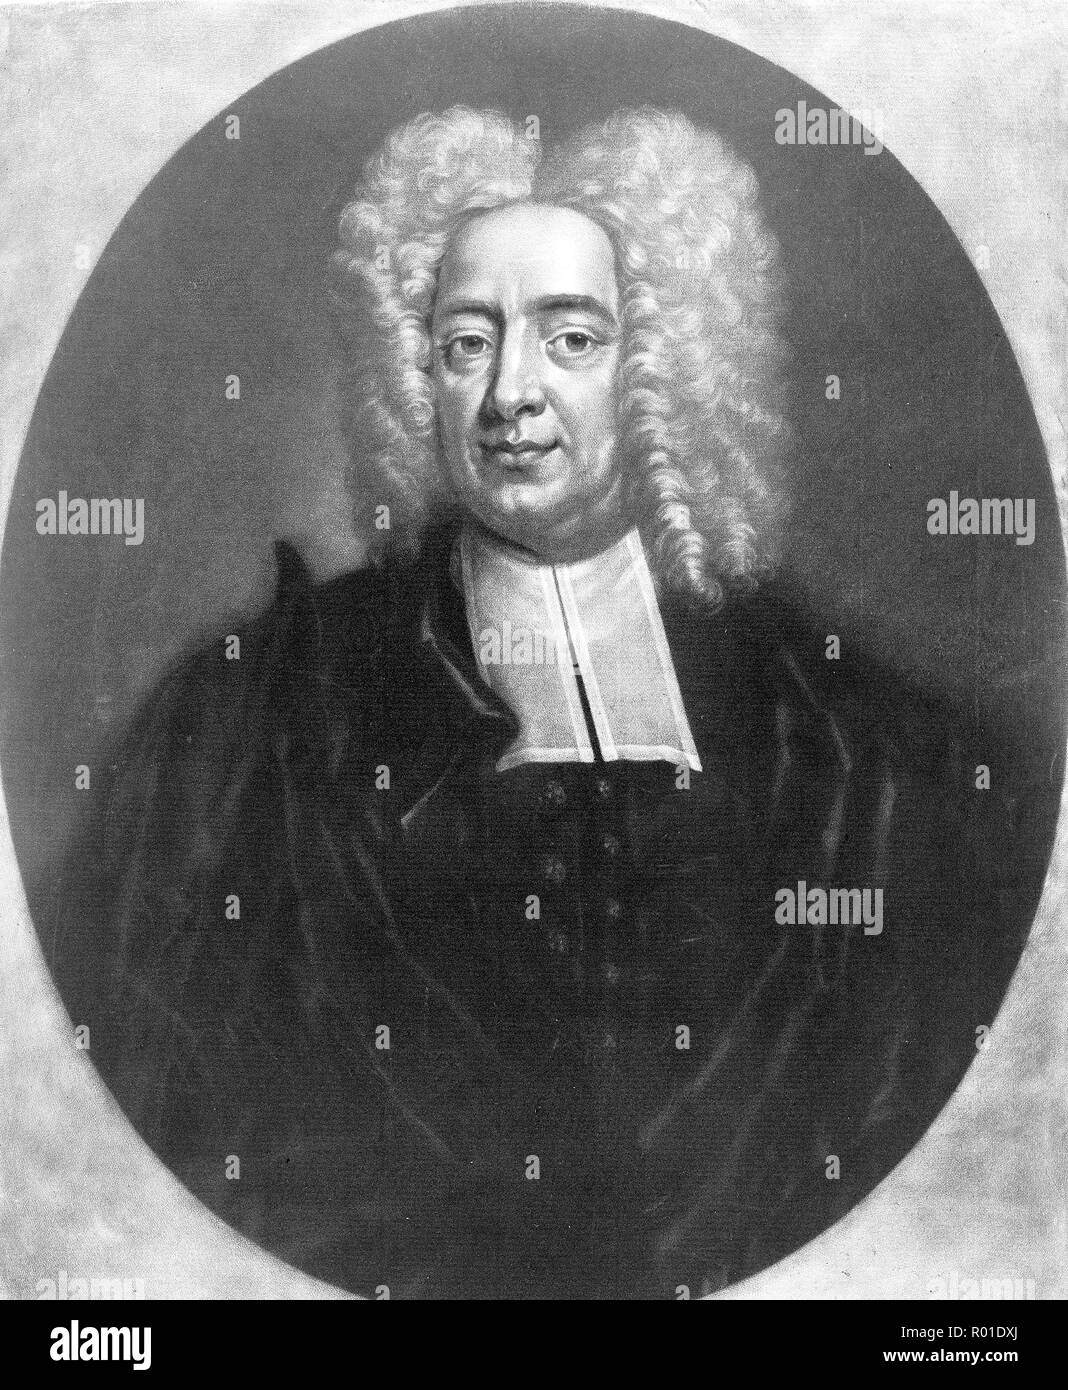 Cotton Mather, Cotton Mather (1663 – 1728) socially and politically influential Puritan minister and author - Stock Image